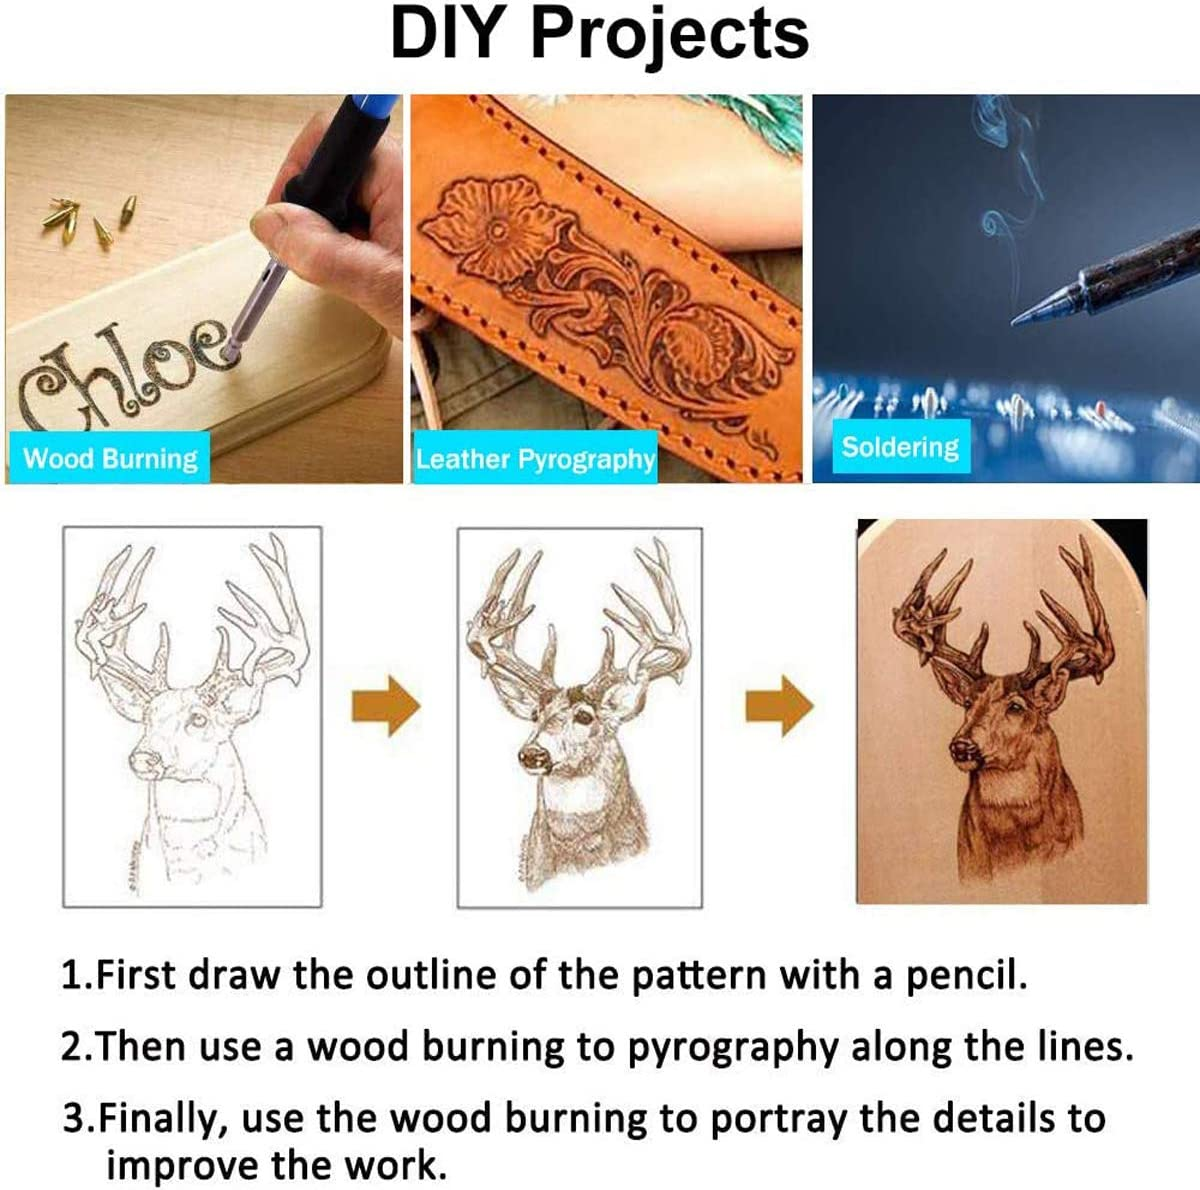 77 PCS Wood Burning Kit Professional Wood Tool with Adjustable Temperature 200~450 ℃ Wood Burning Pen and Soldering Iron Various Creative DIY Tool Set Pyrography Pen for Embossing//Carving//Soldering